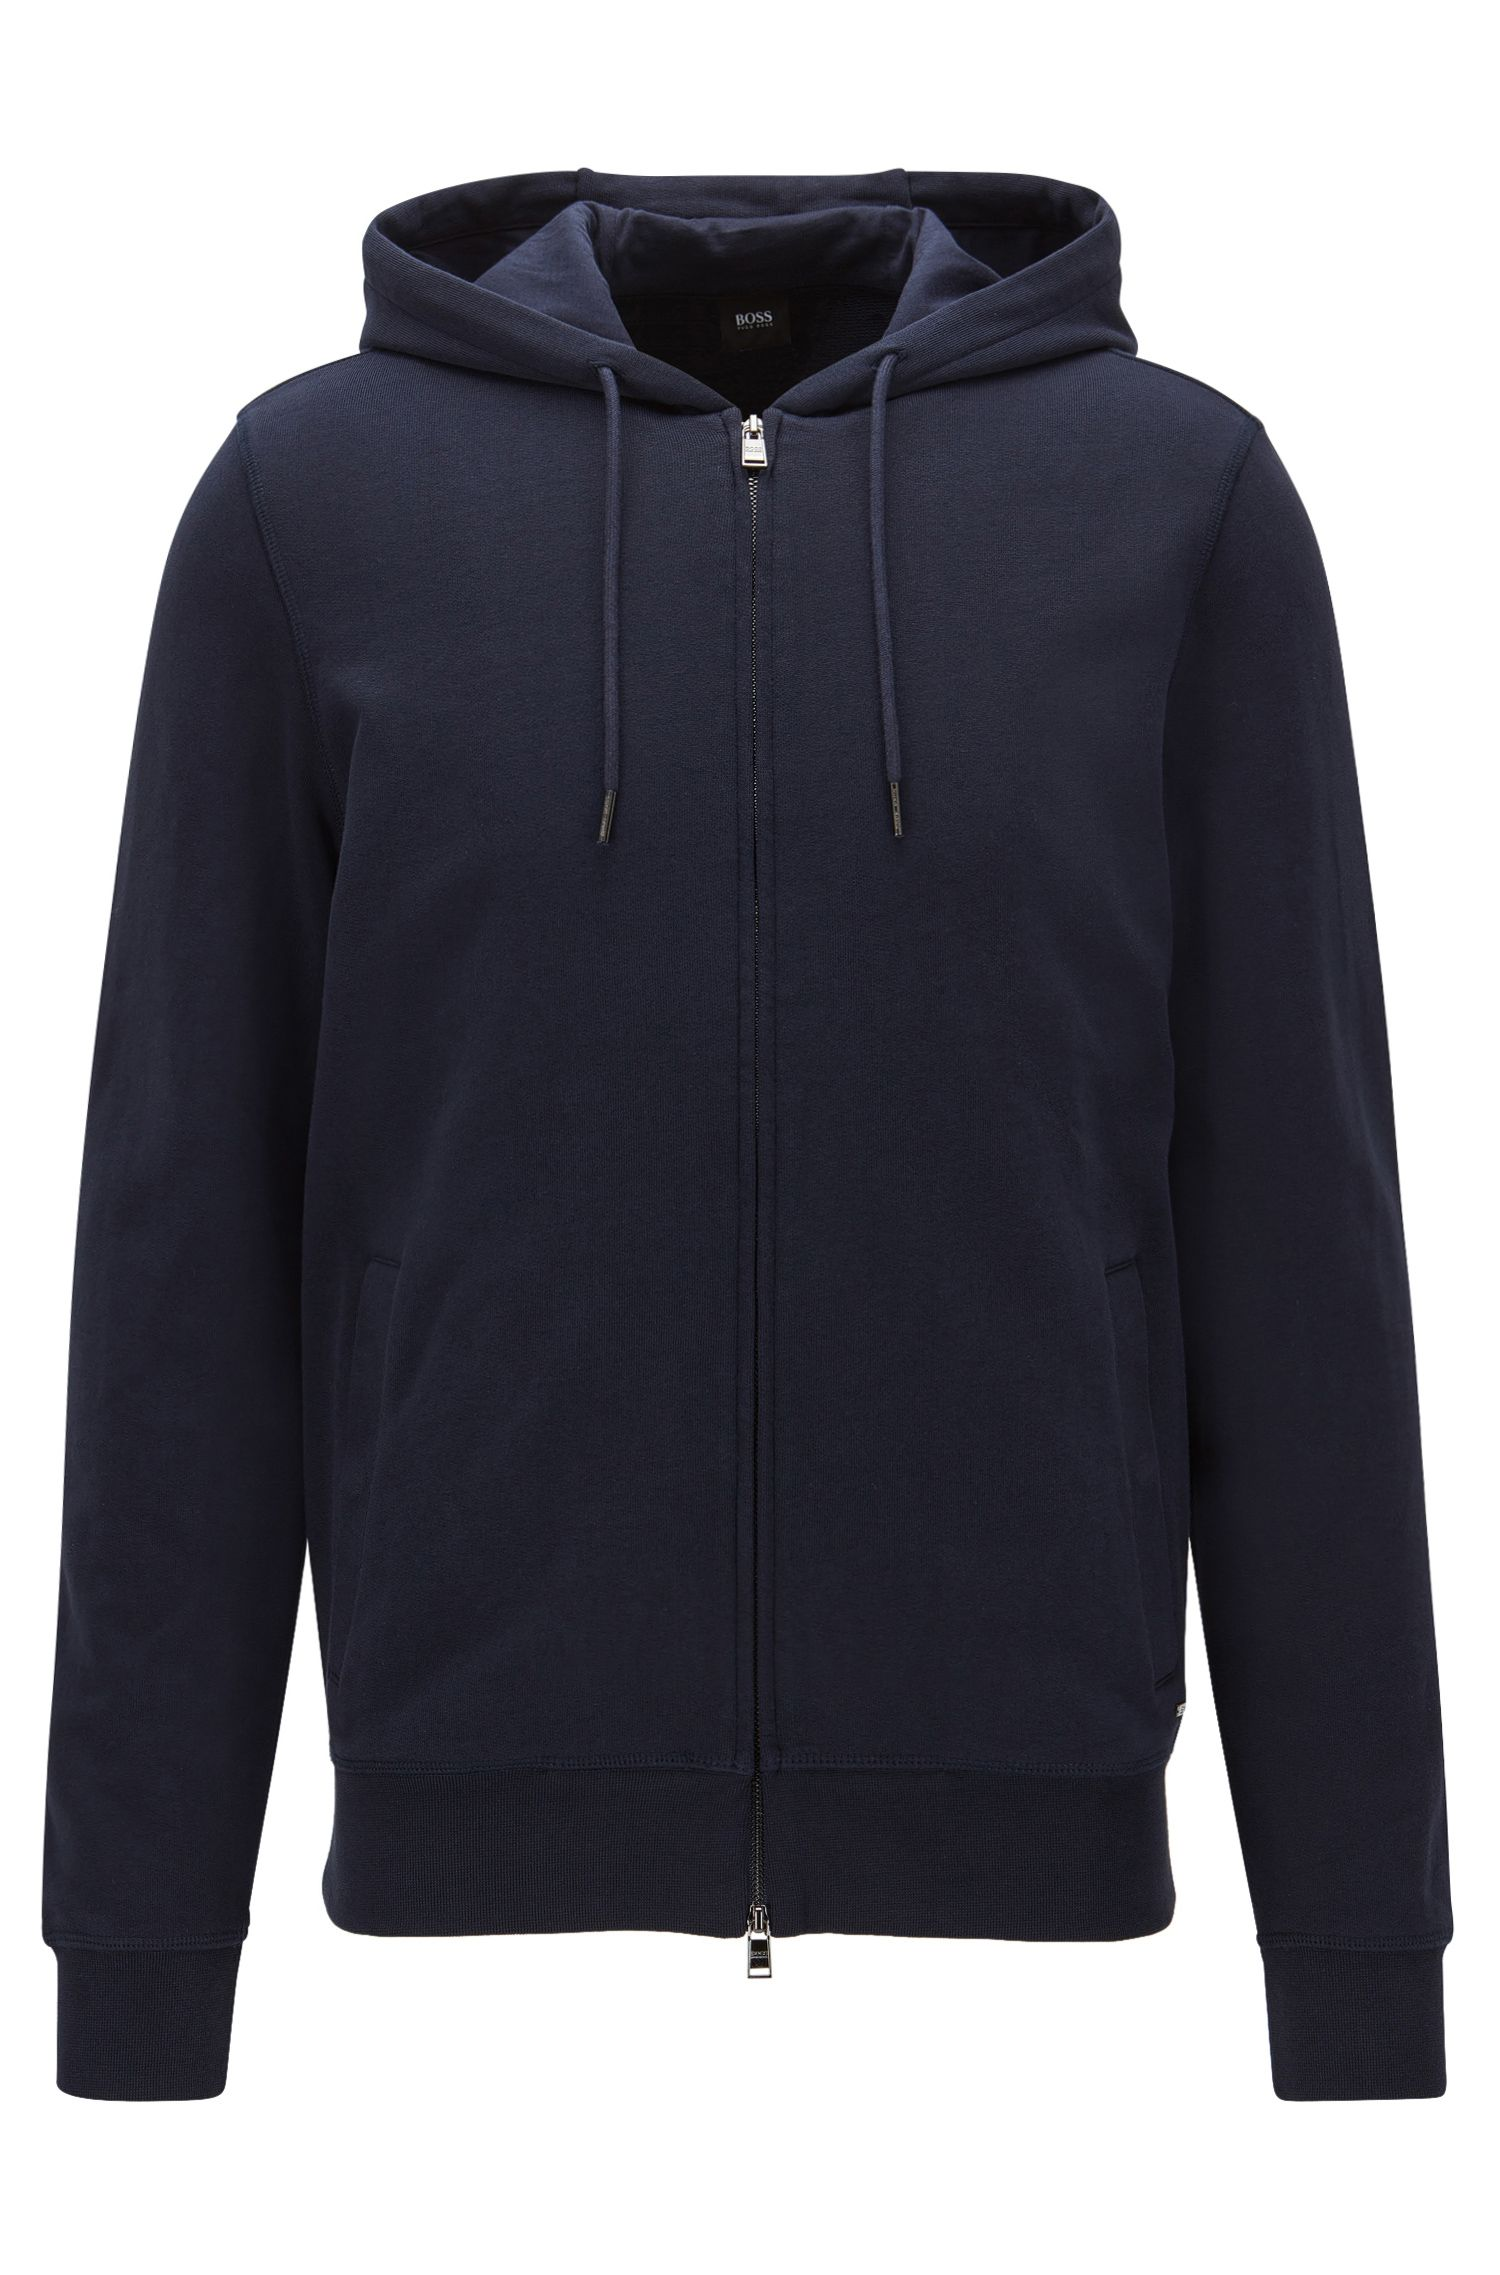 Slim-fit zip-through sweatshirt in cotton terry